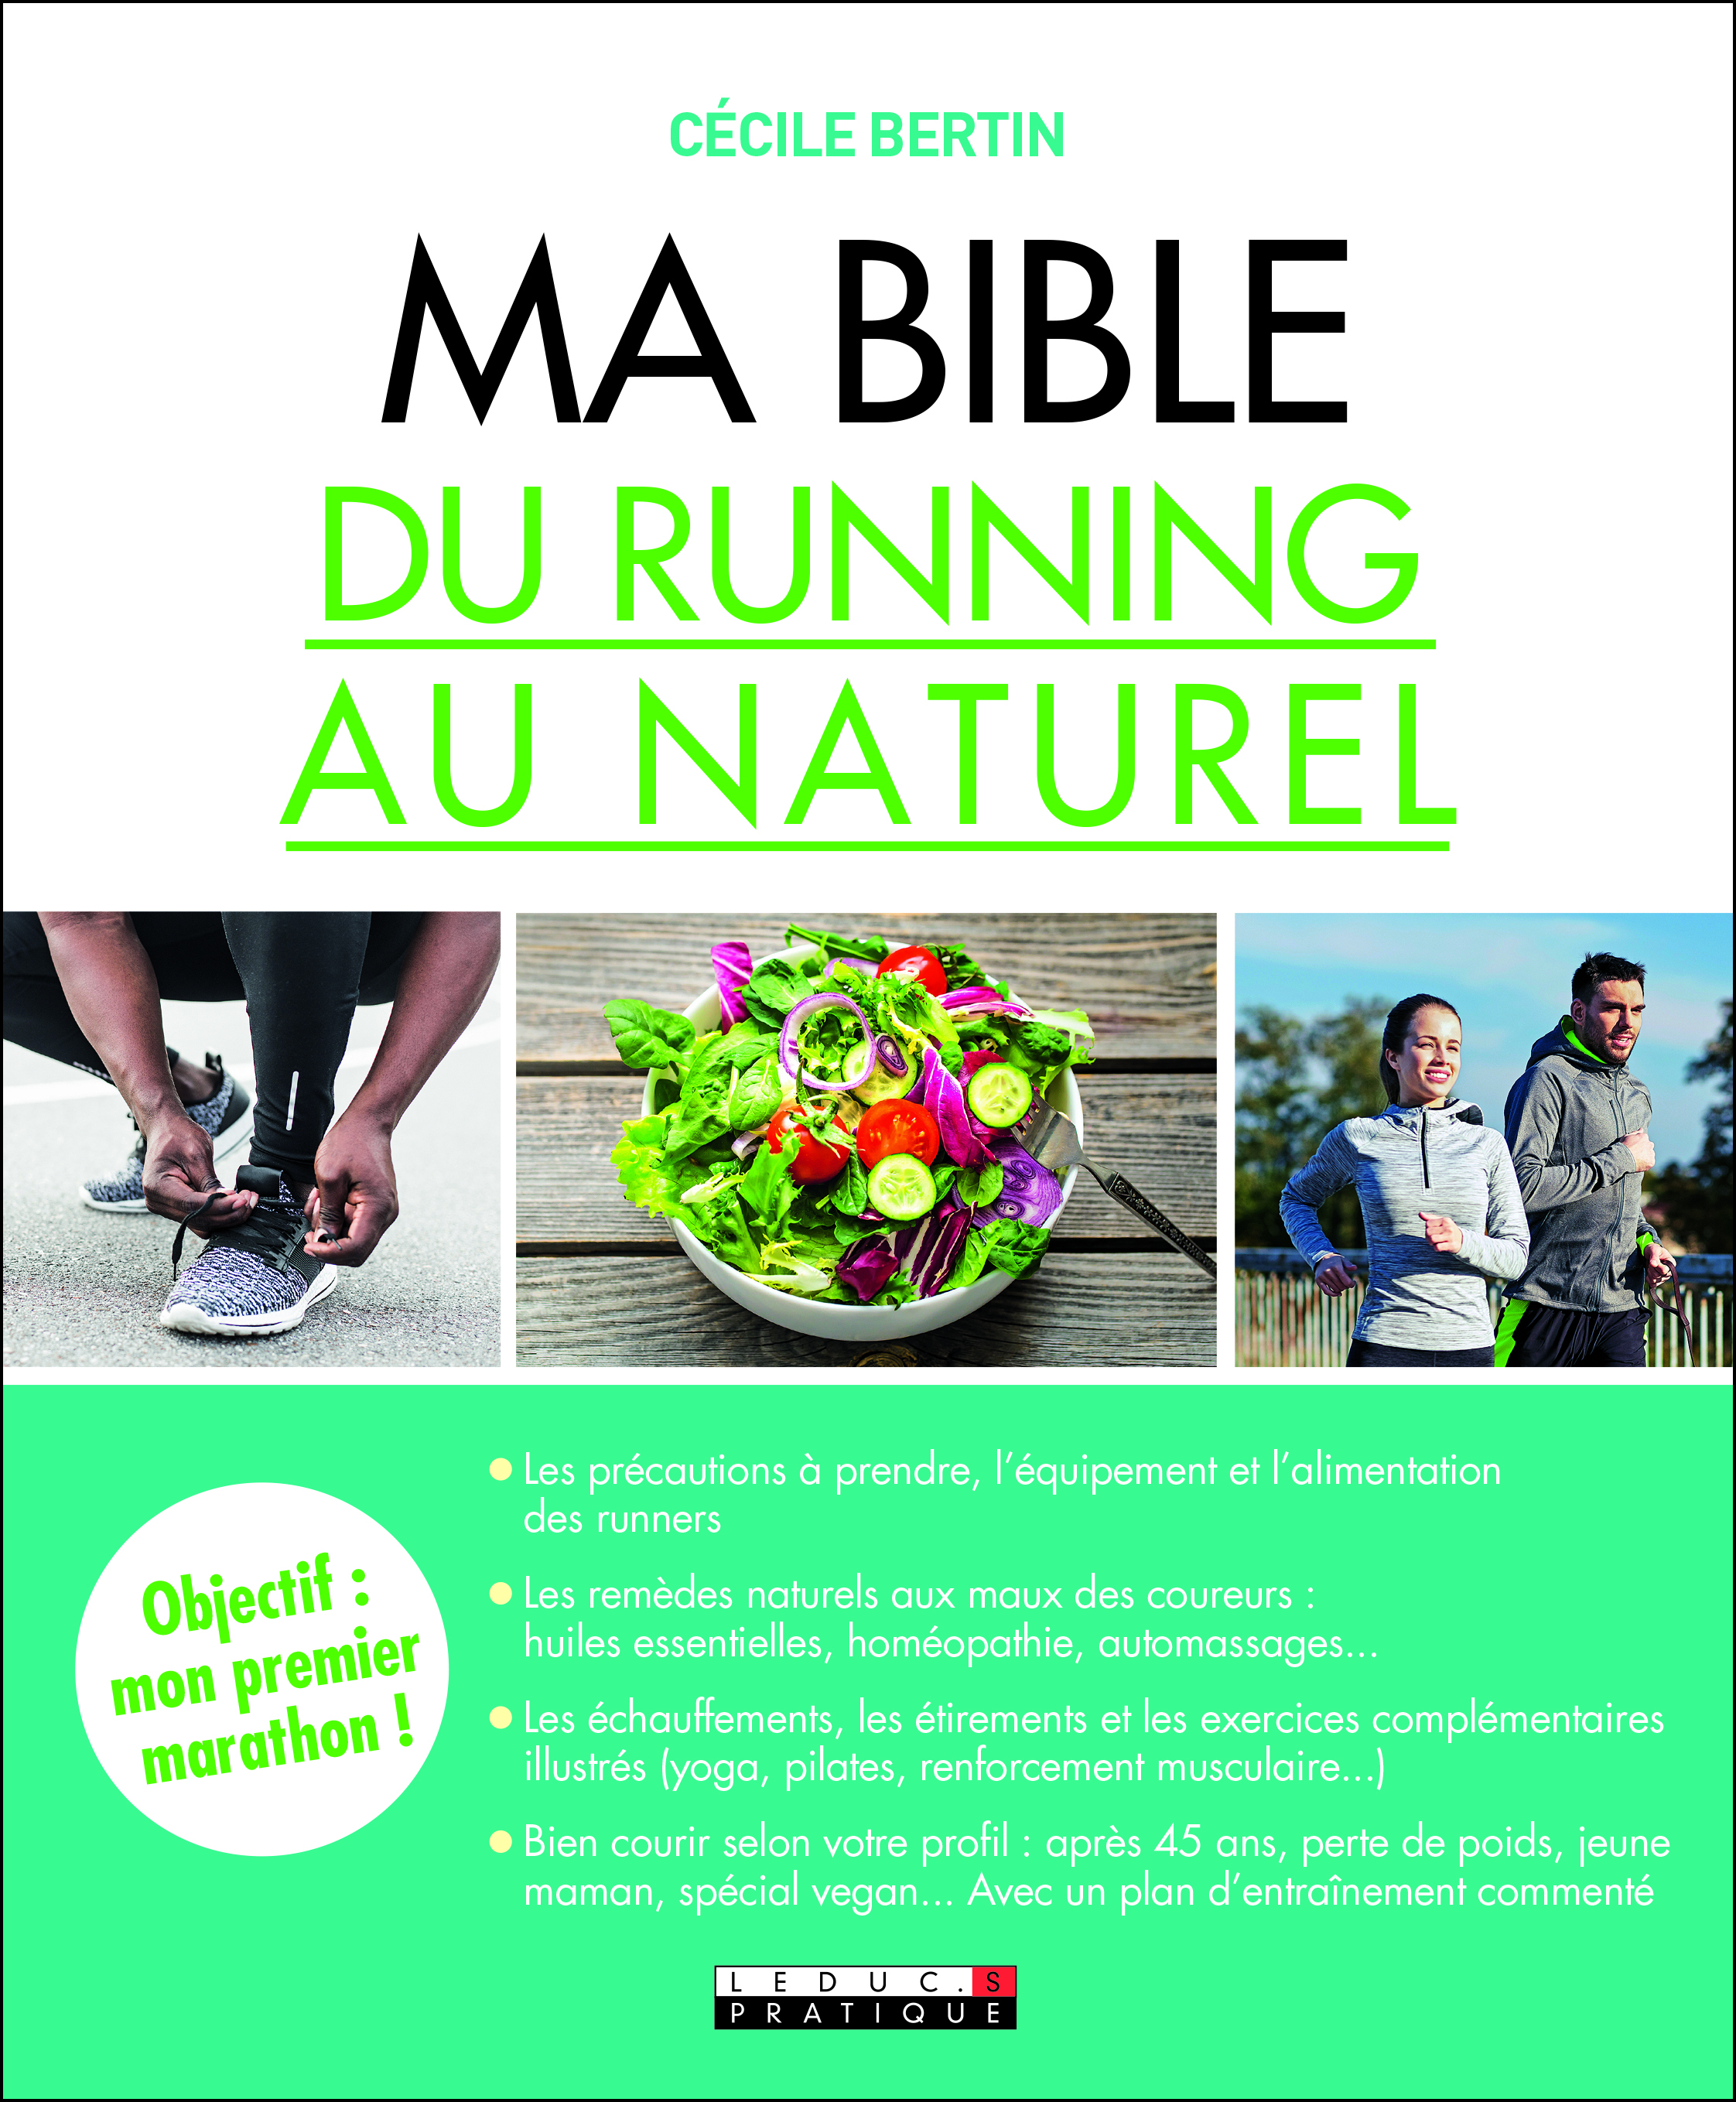 MA BIBLE DU RUNNING AU NATUREL